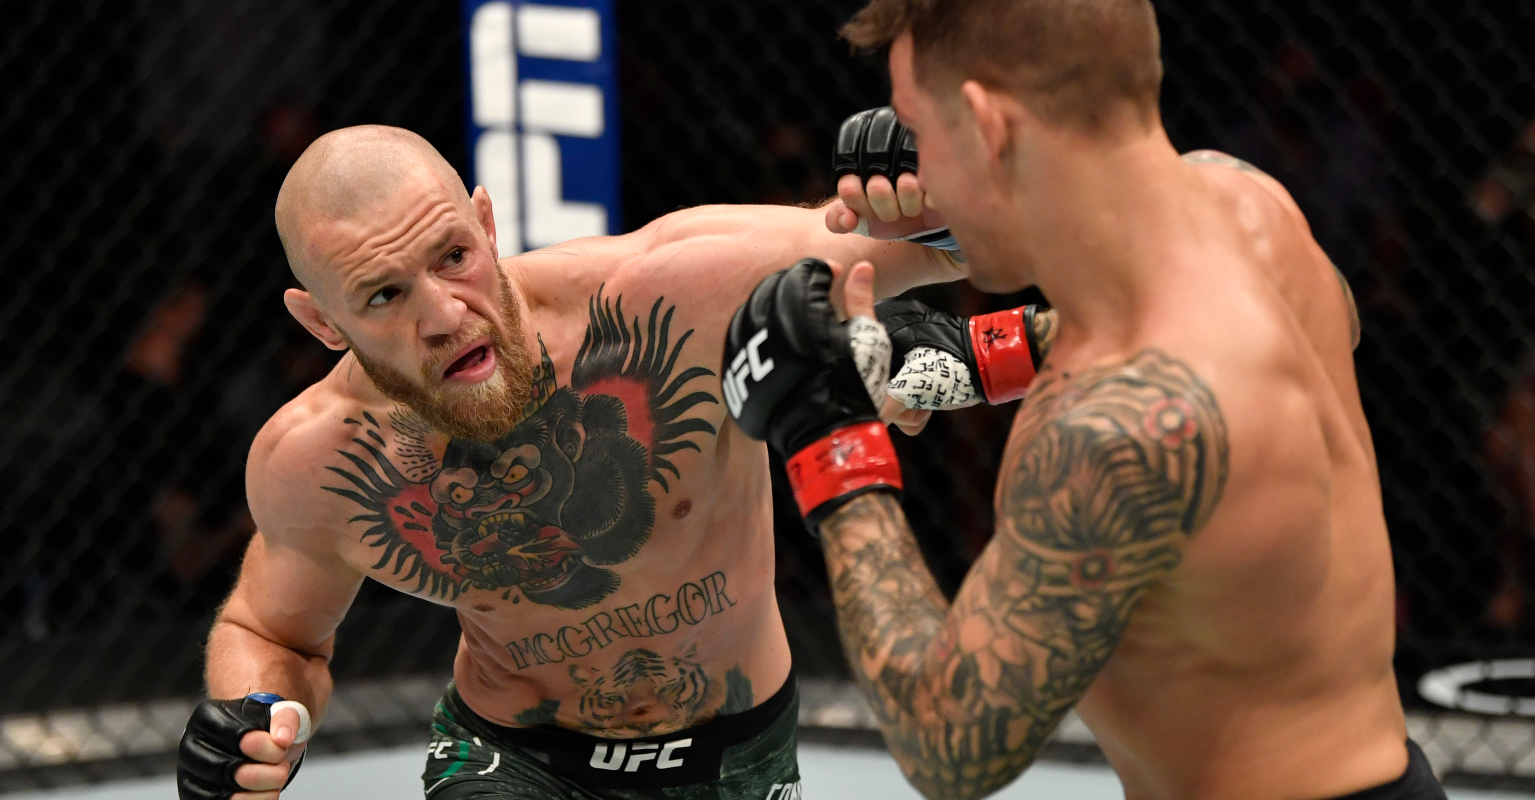 Backstage video shows Conor McGregor's interaction with Dustin Poirier after shock knockout loss